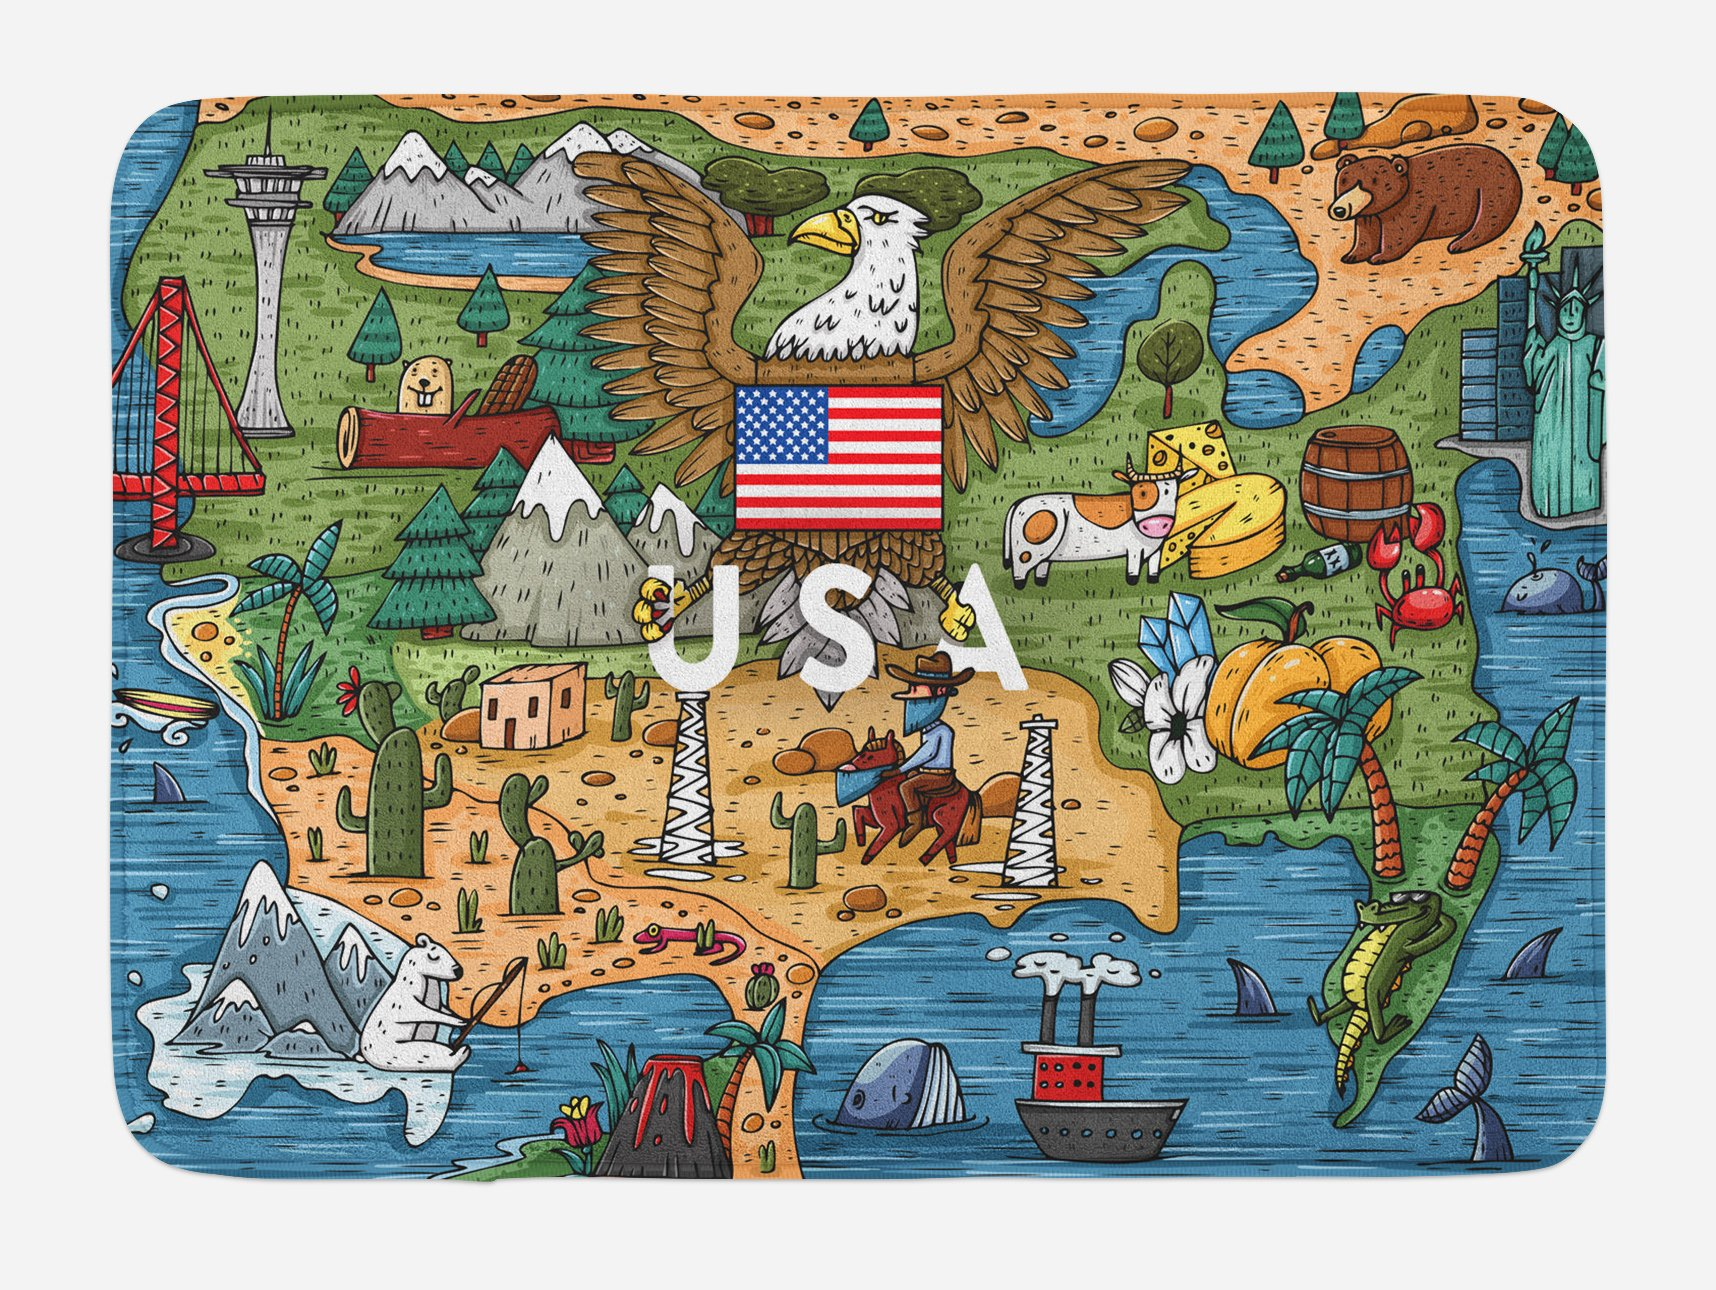 Lunarable United States Bath Mat, Cartoon Style Map of North America with Popular Attractions and a Bald Eagle, Plush Bathroom Decor Mat with Non Slip Backing, 29.5 W X 17.5 W Inches, Multicolor